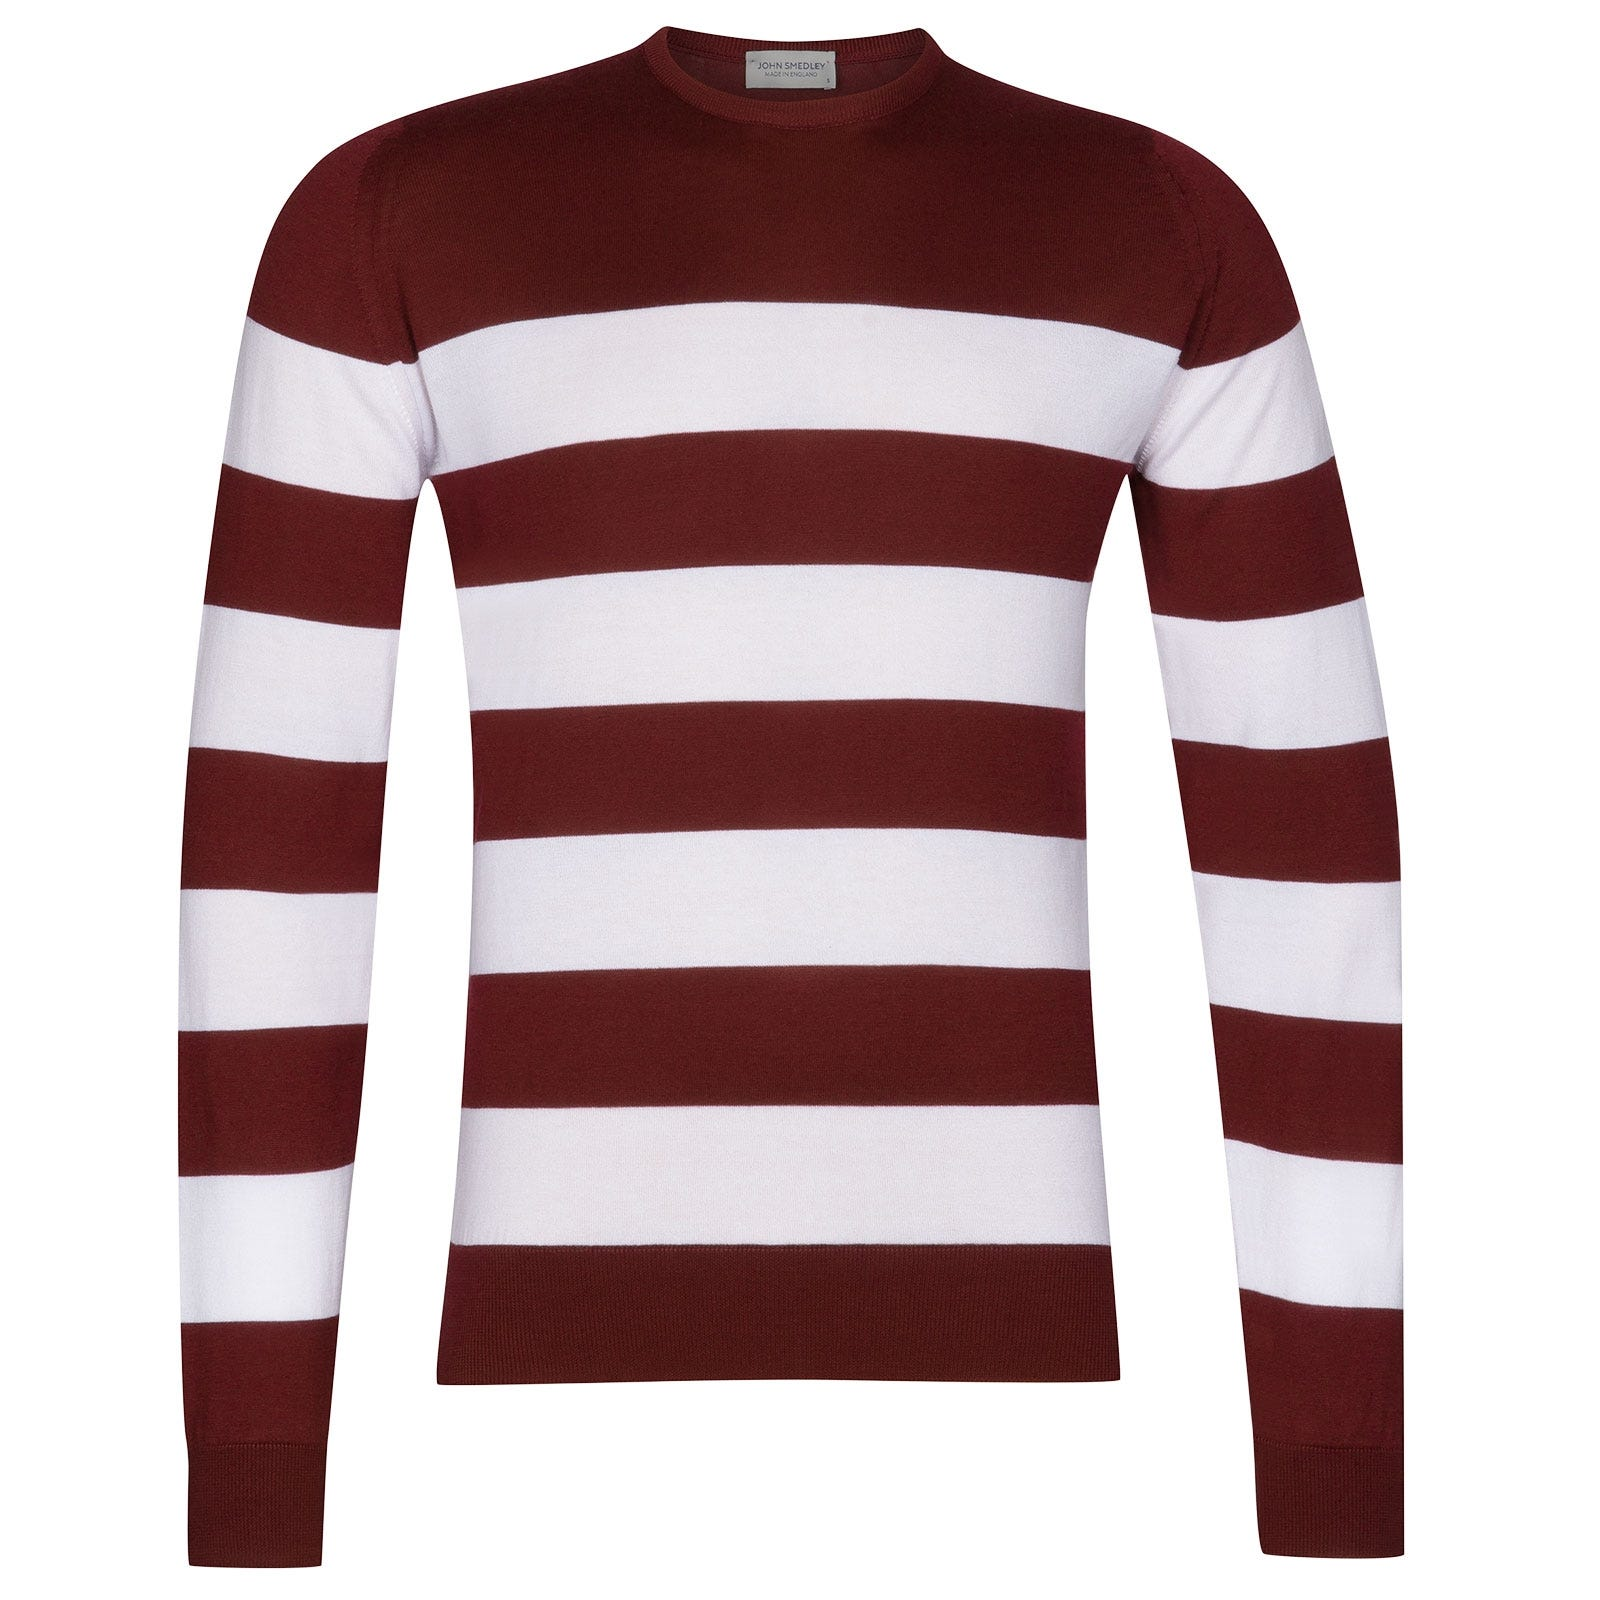 John Smedley Raydon Sea Island Cotton Pullover in Burgundy Grain-L